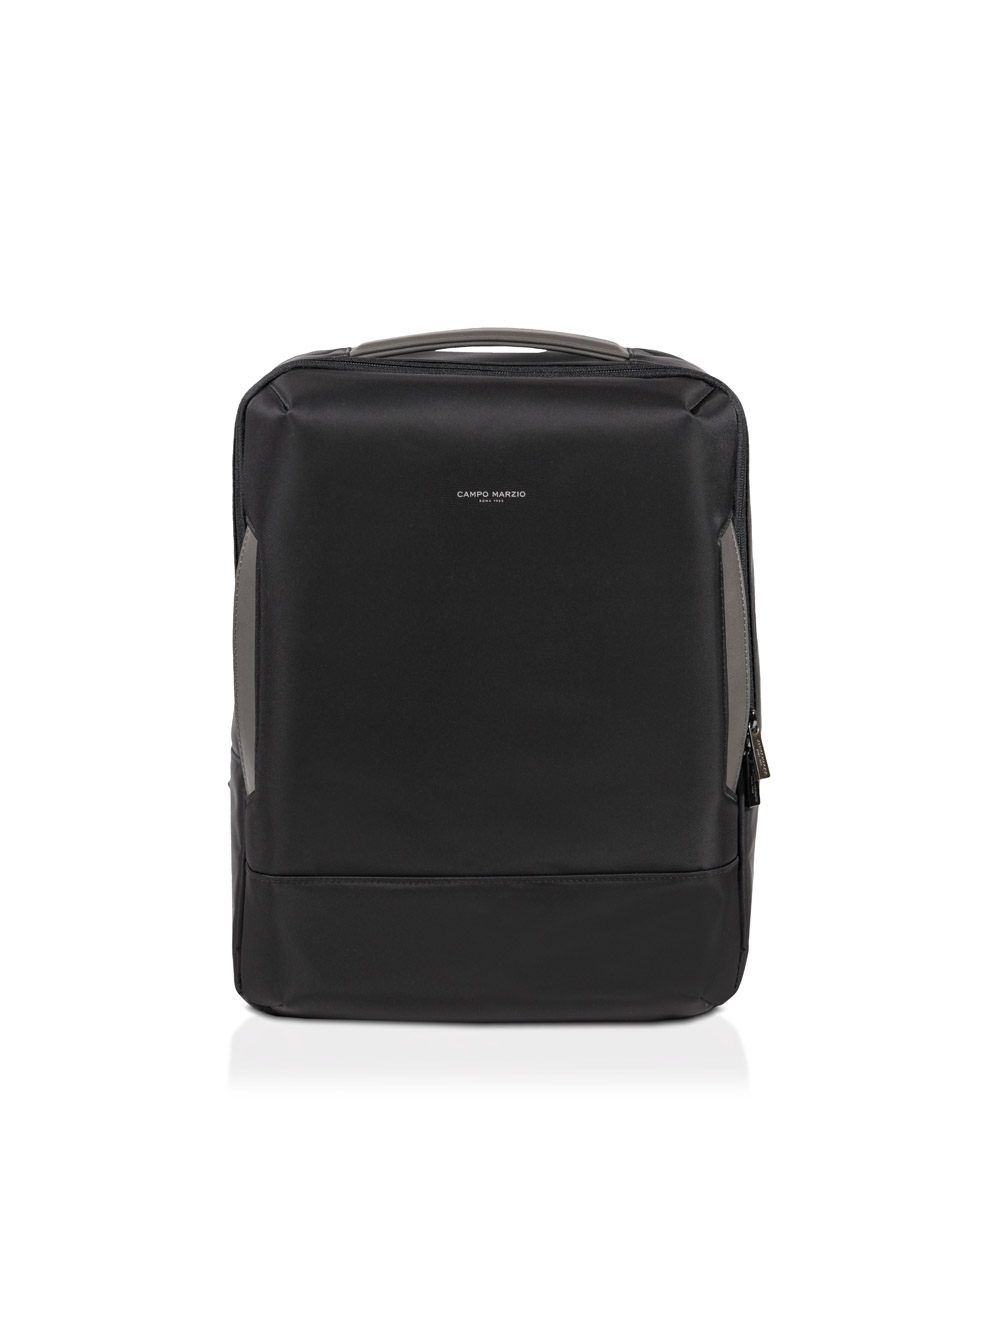 Medium Backpack 13""